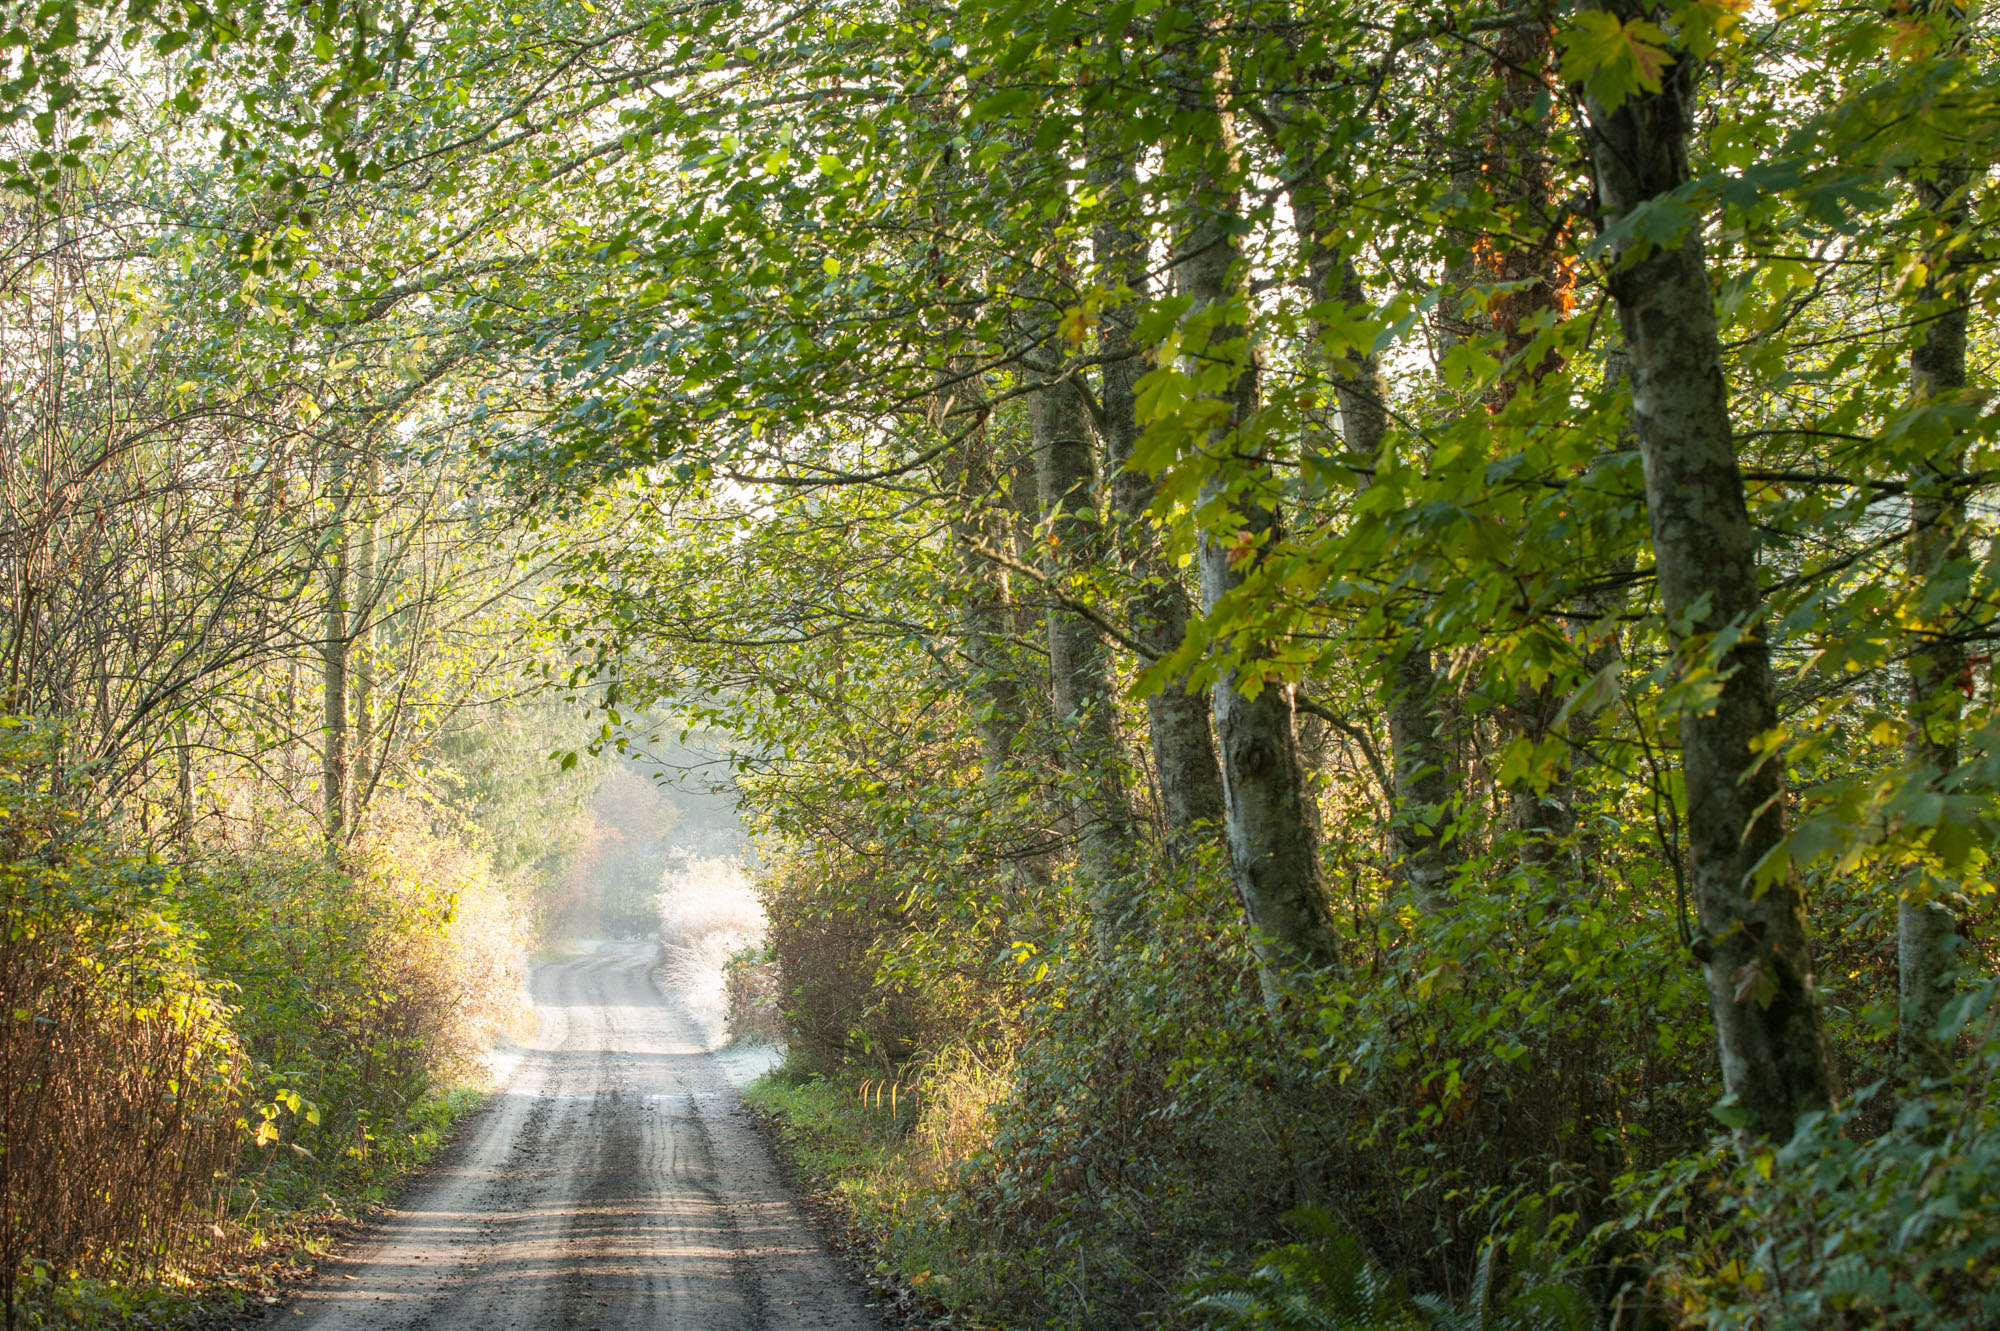 A peaceful country road...